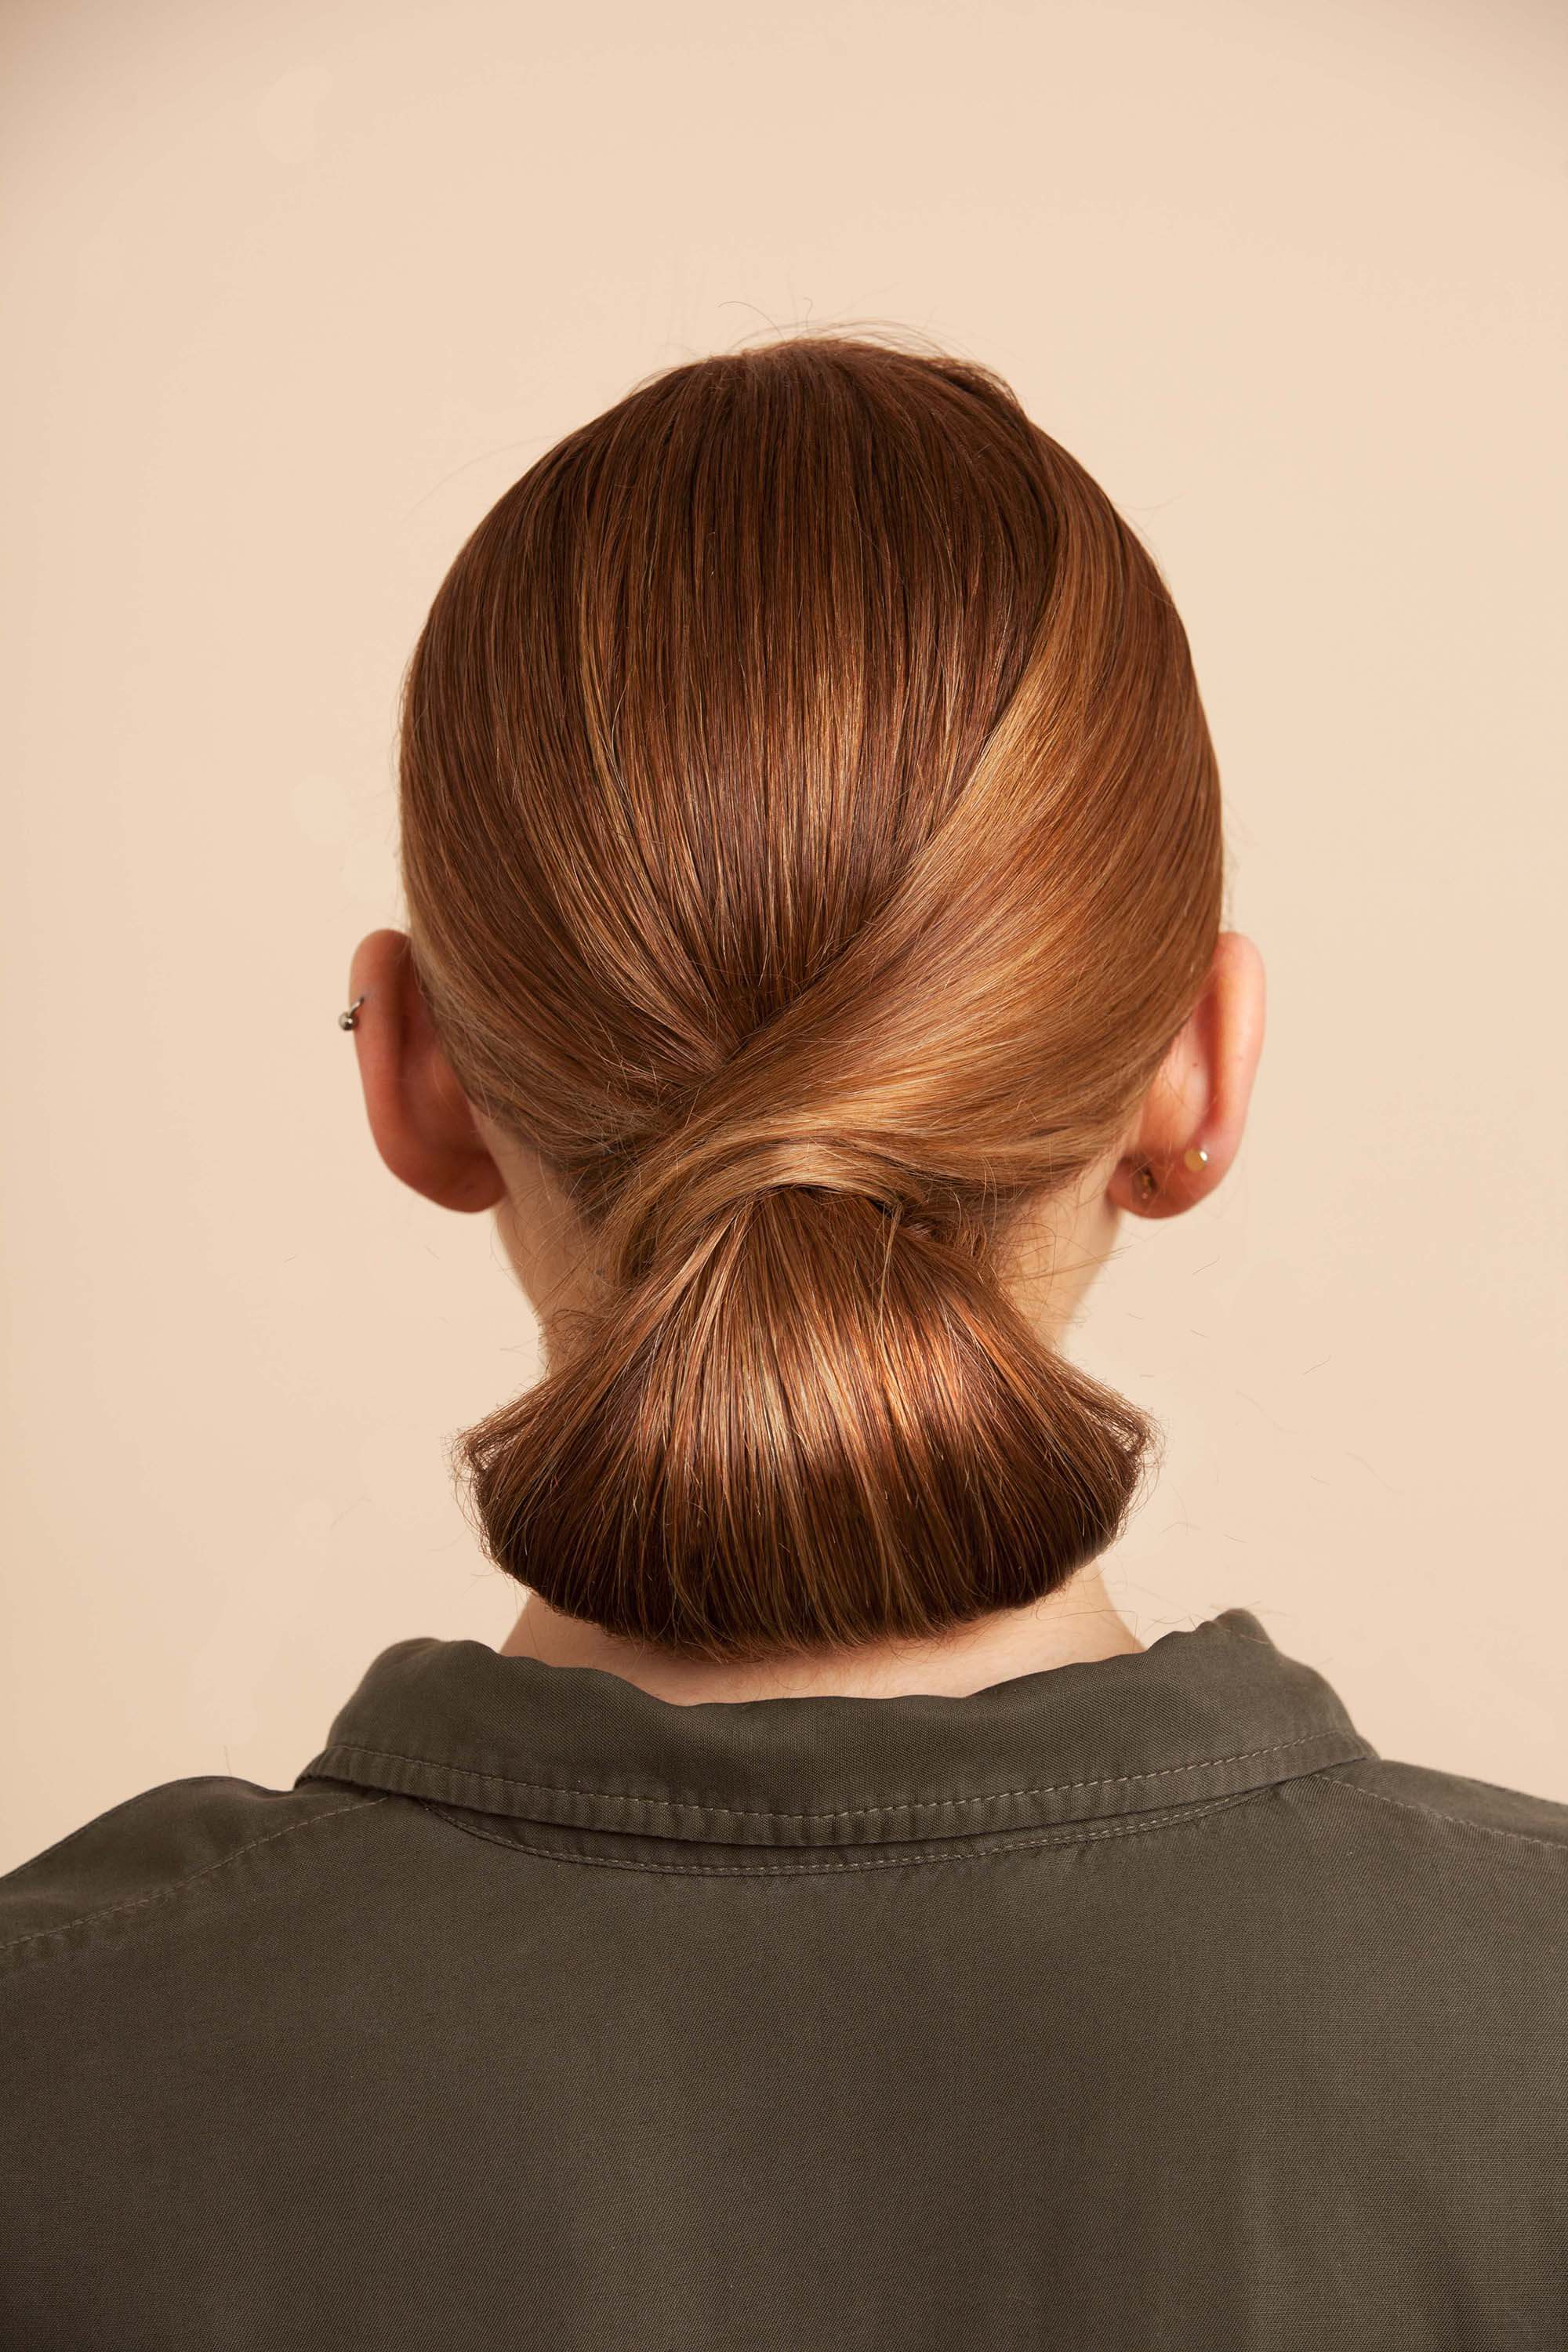 Wrapped chignon hairstyle